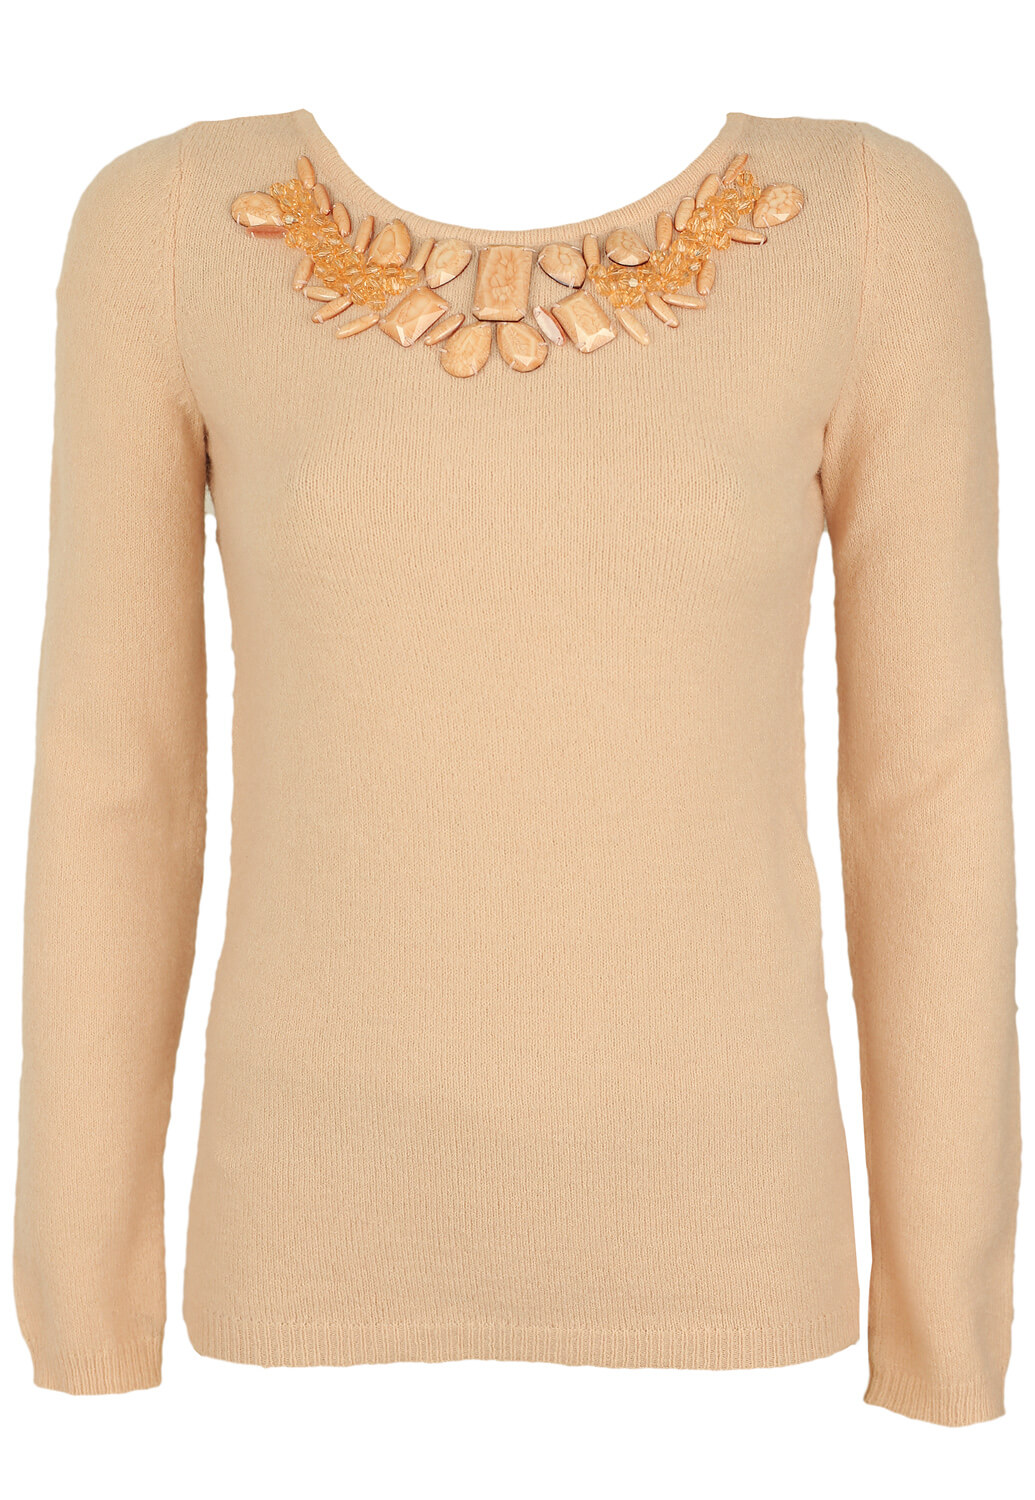 Bluza Orsay Peach Light Orange